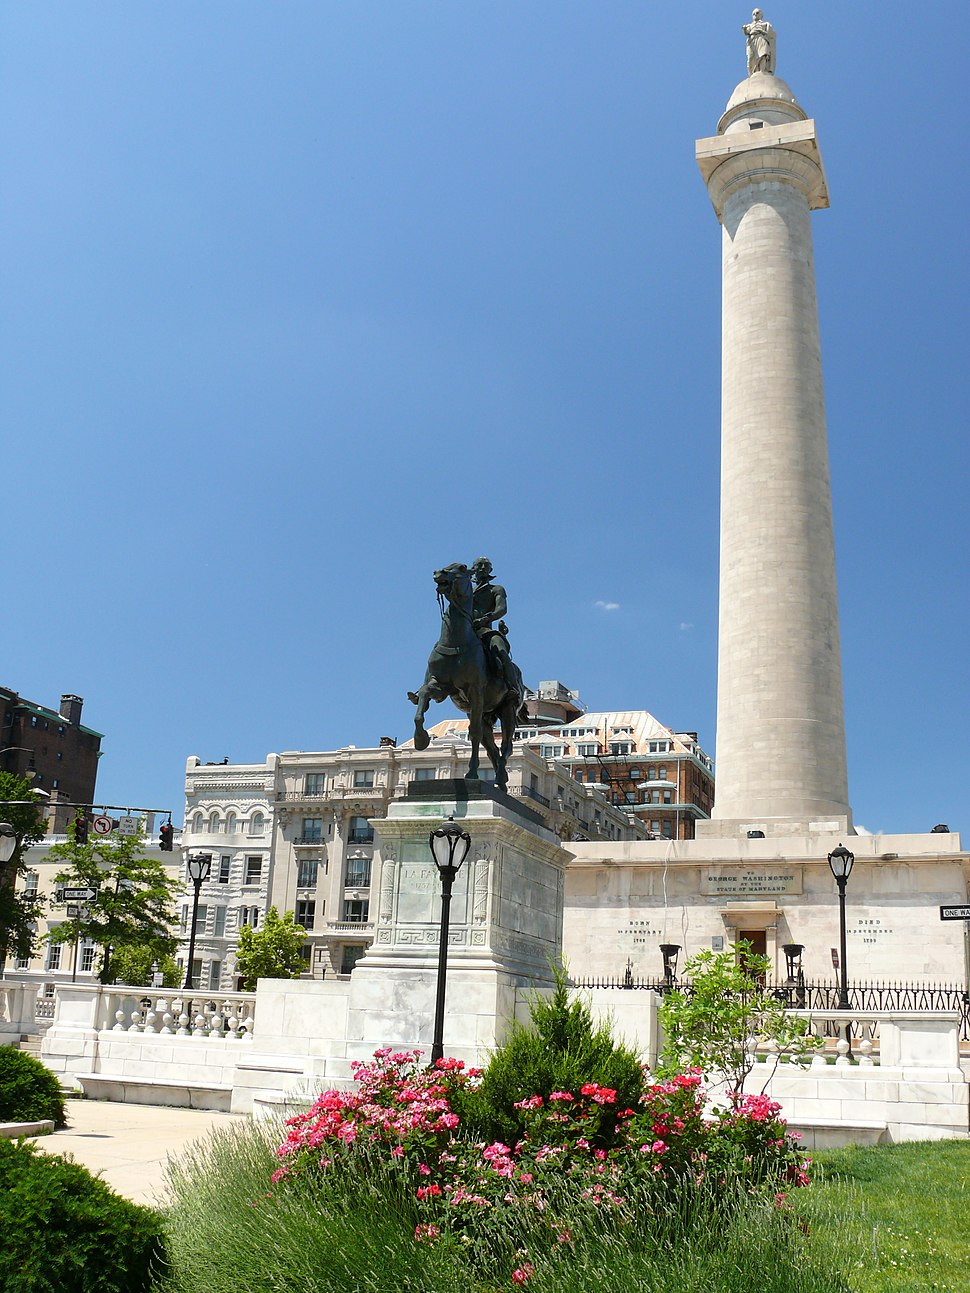 BaltWashMonument